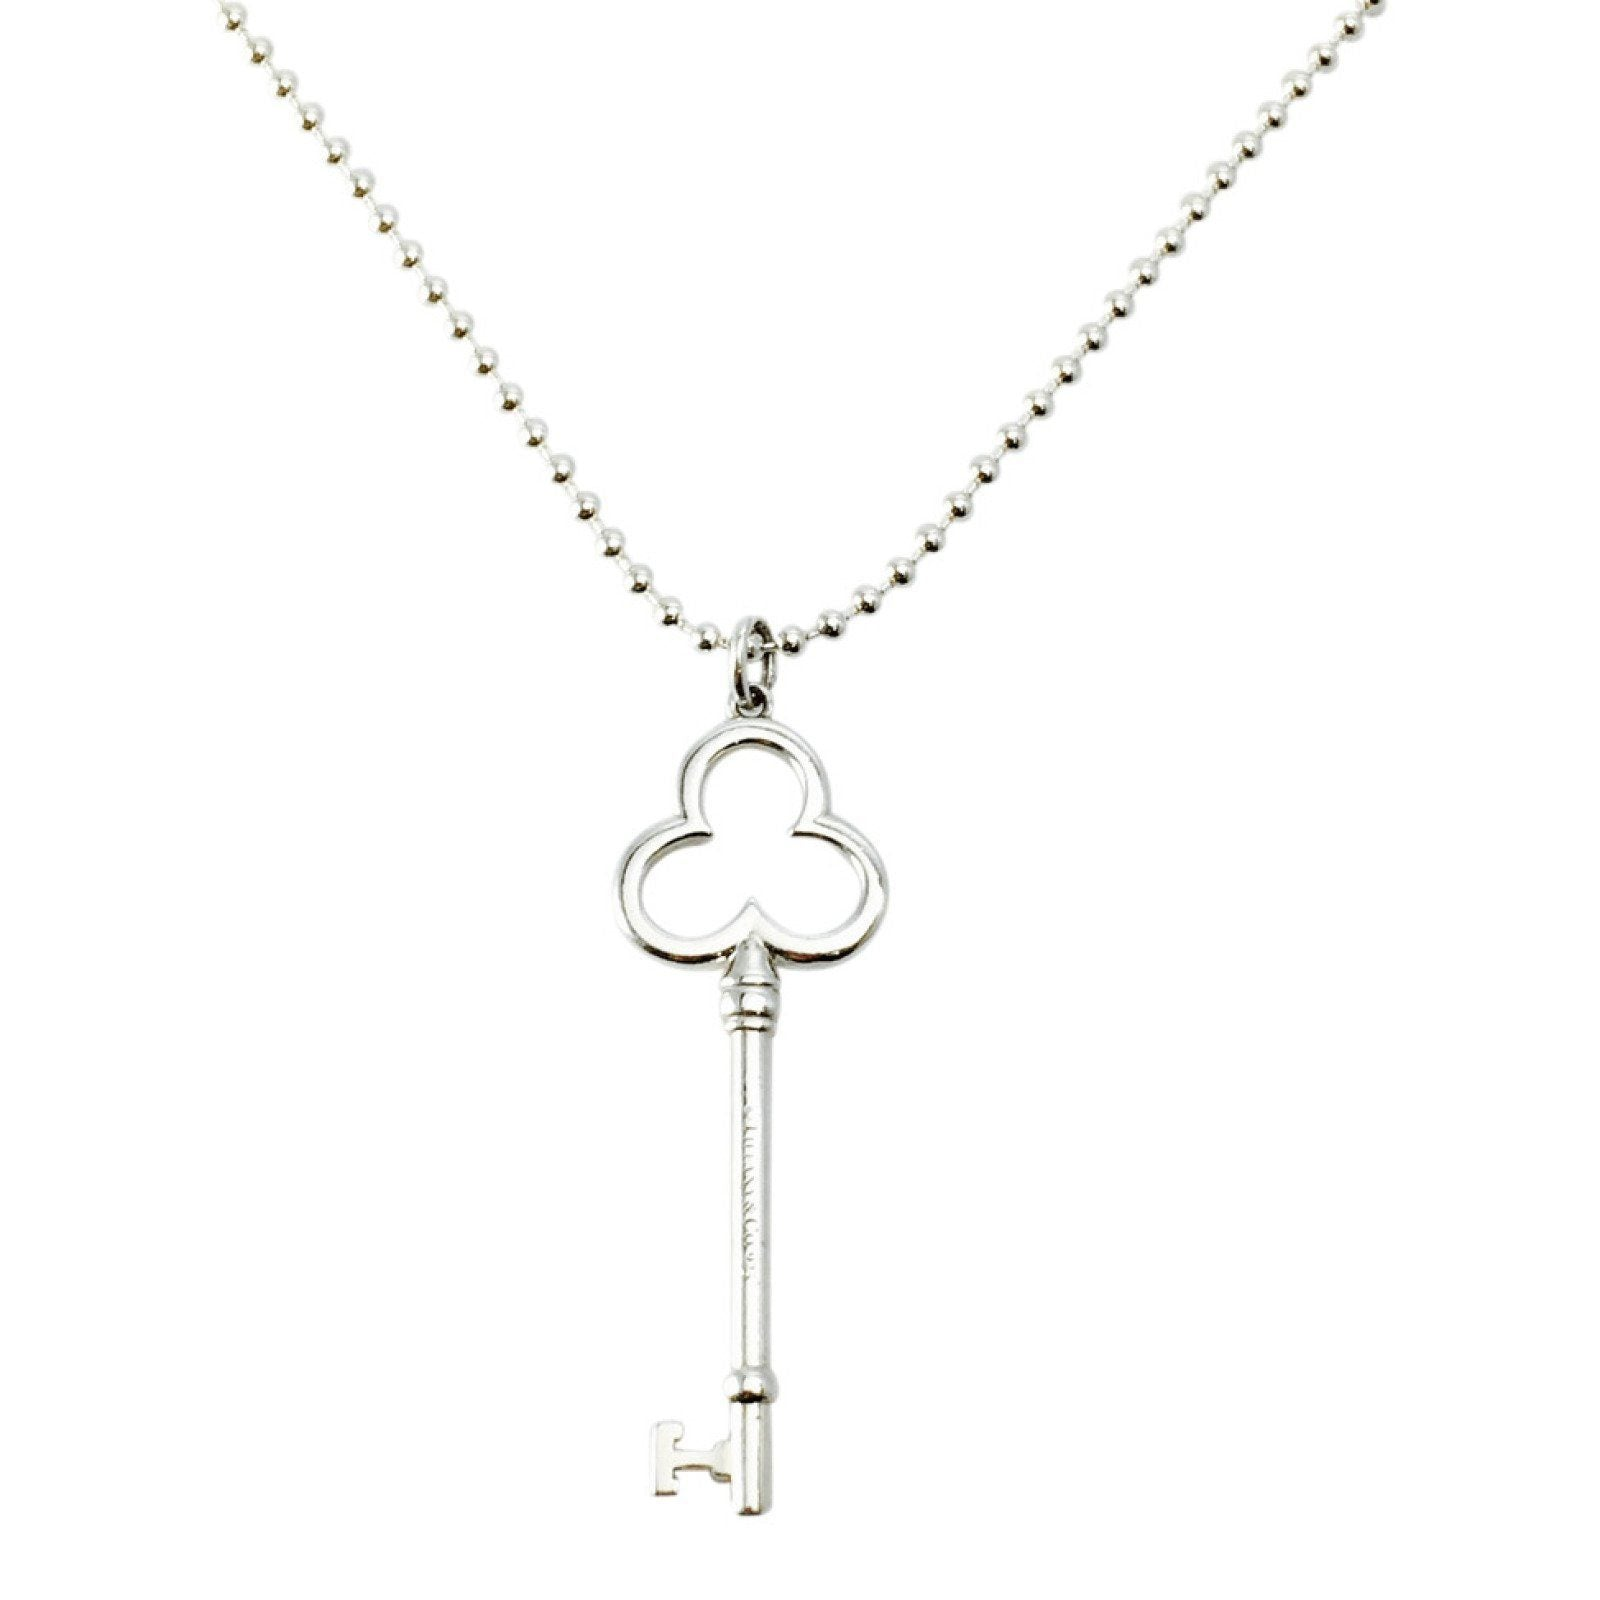 3accb93cb Tiffany & Co. Trefoil Key Pendant Necklace– Oliver Jewellery